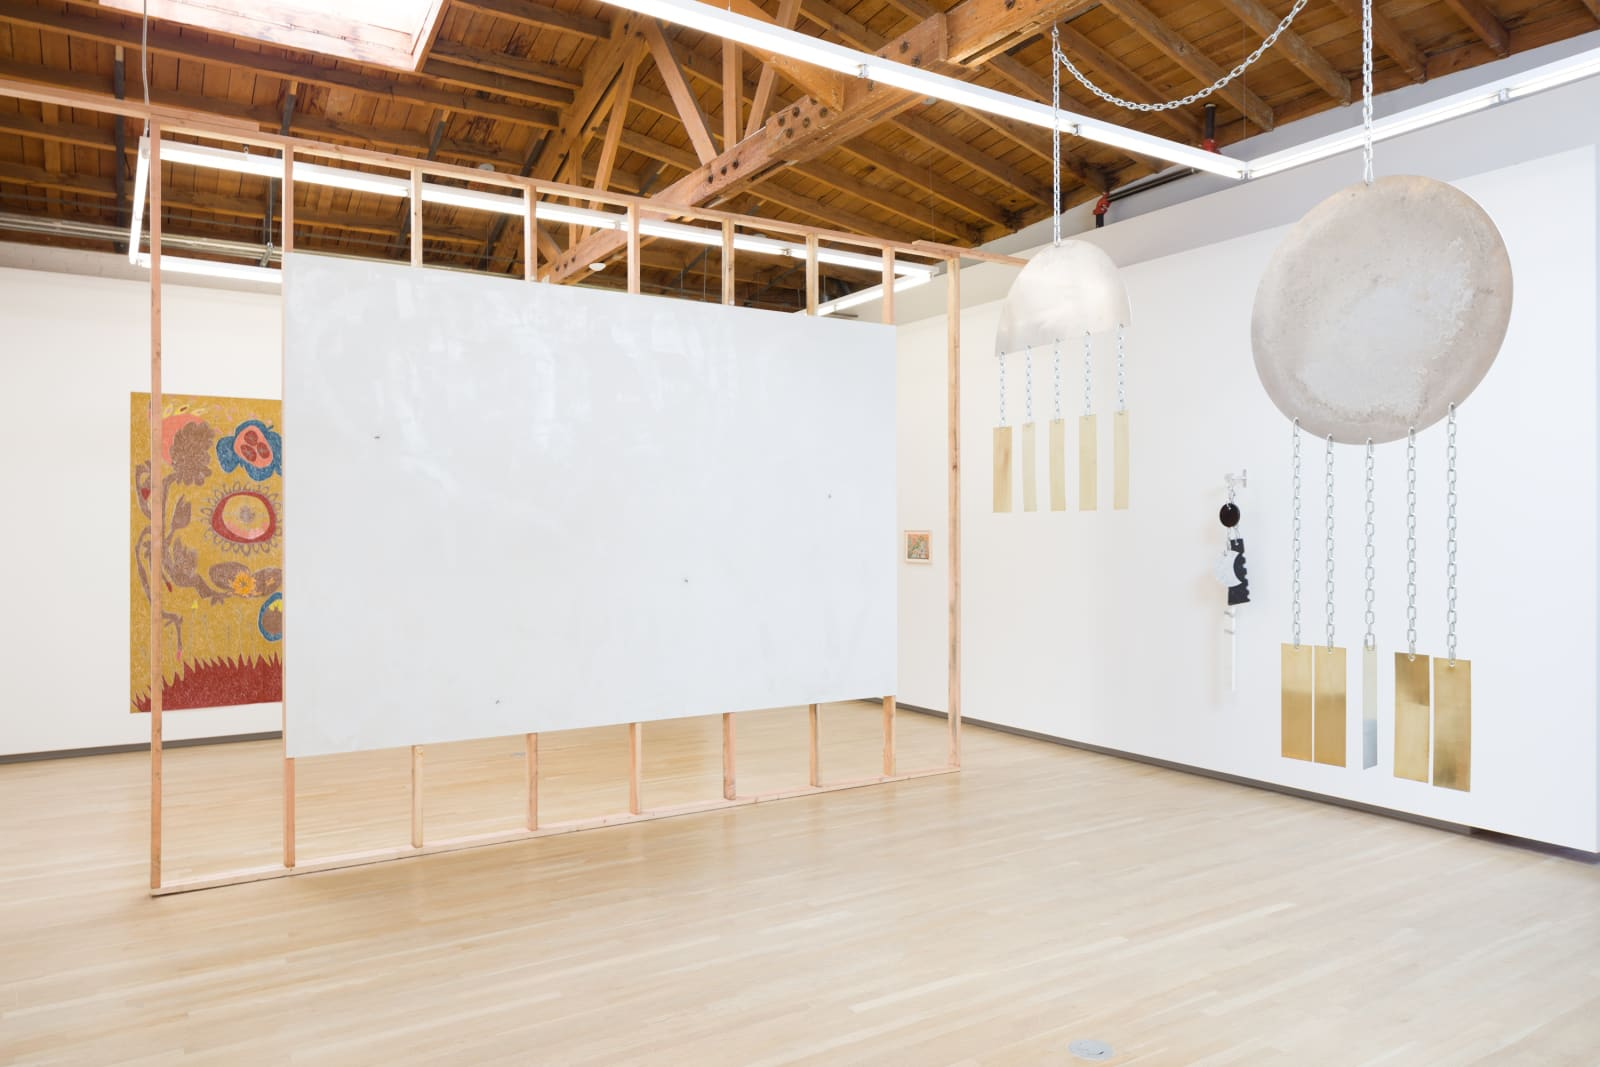 The Project Room, 2019, Shulamit Nazarian, Los Angeles, installation view